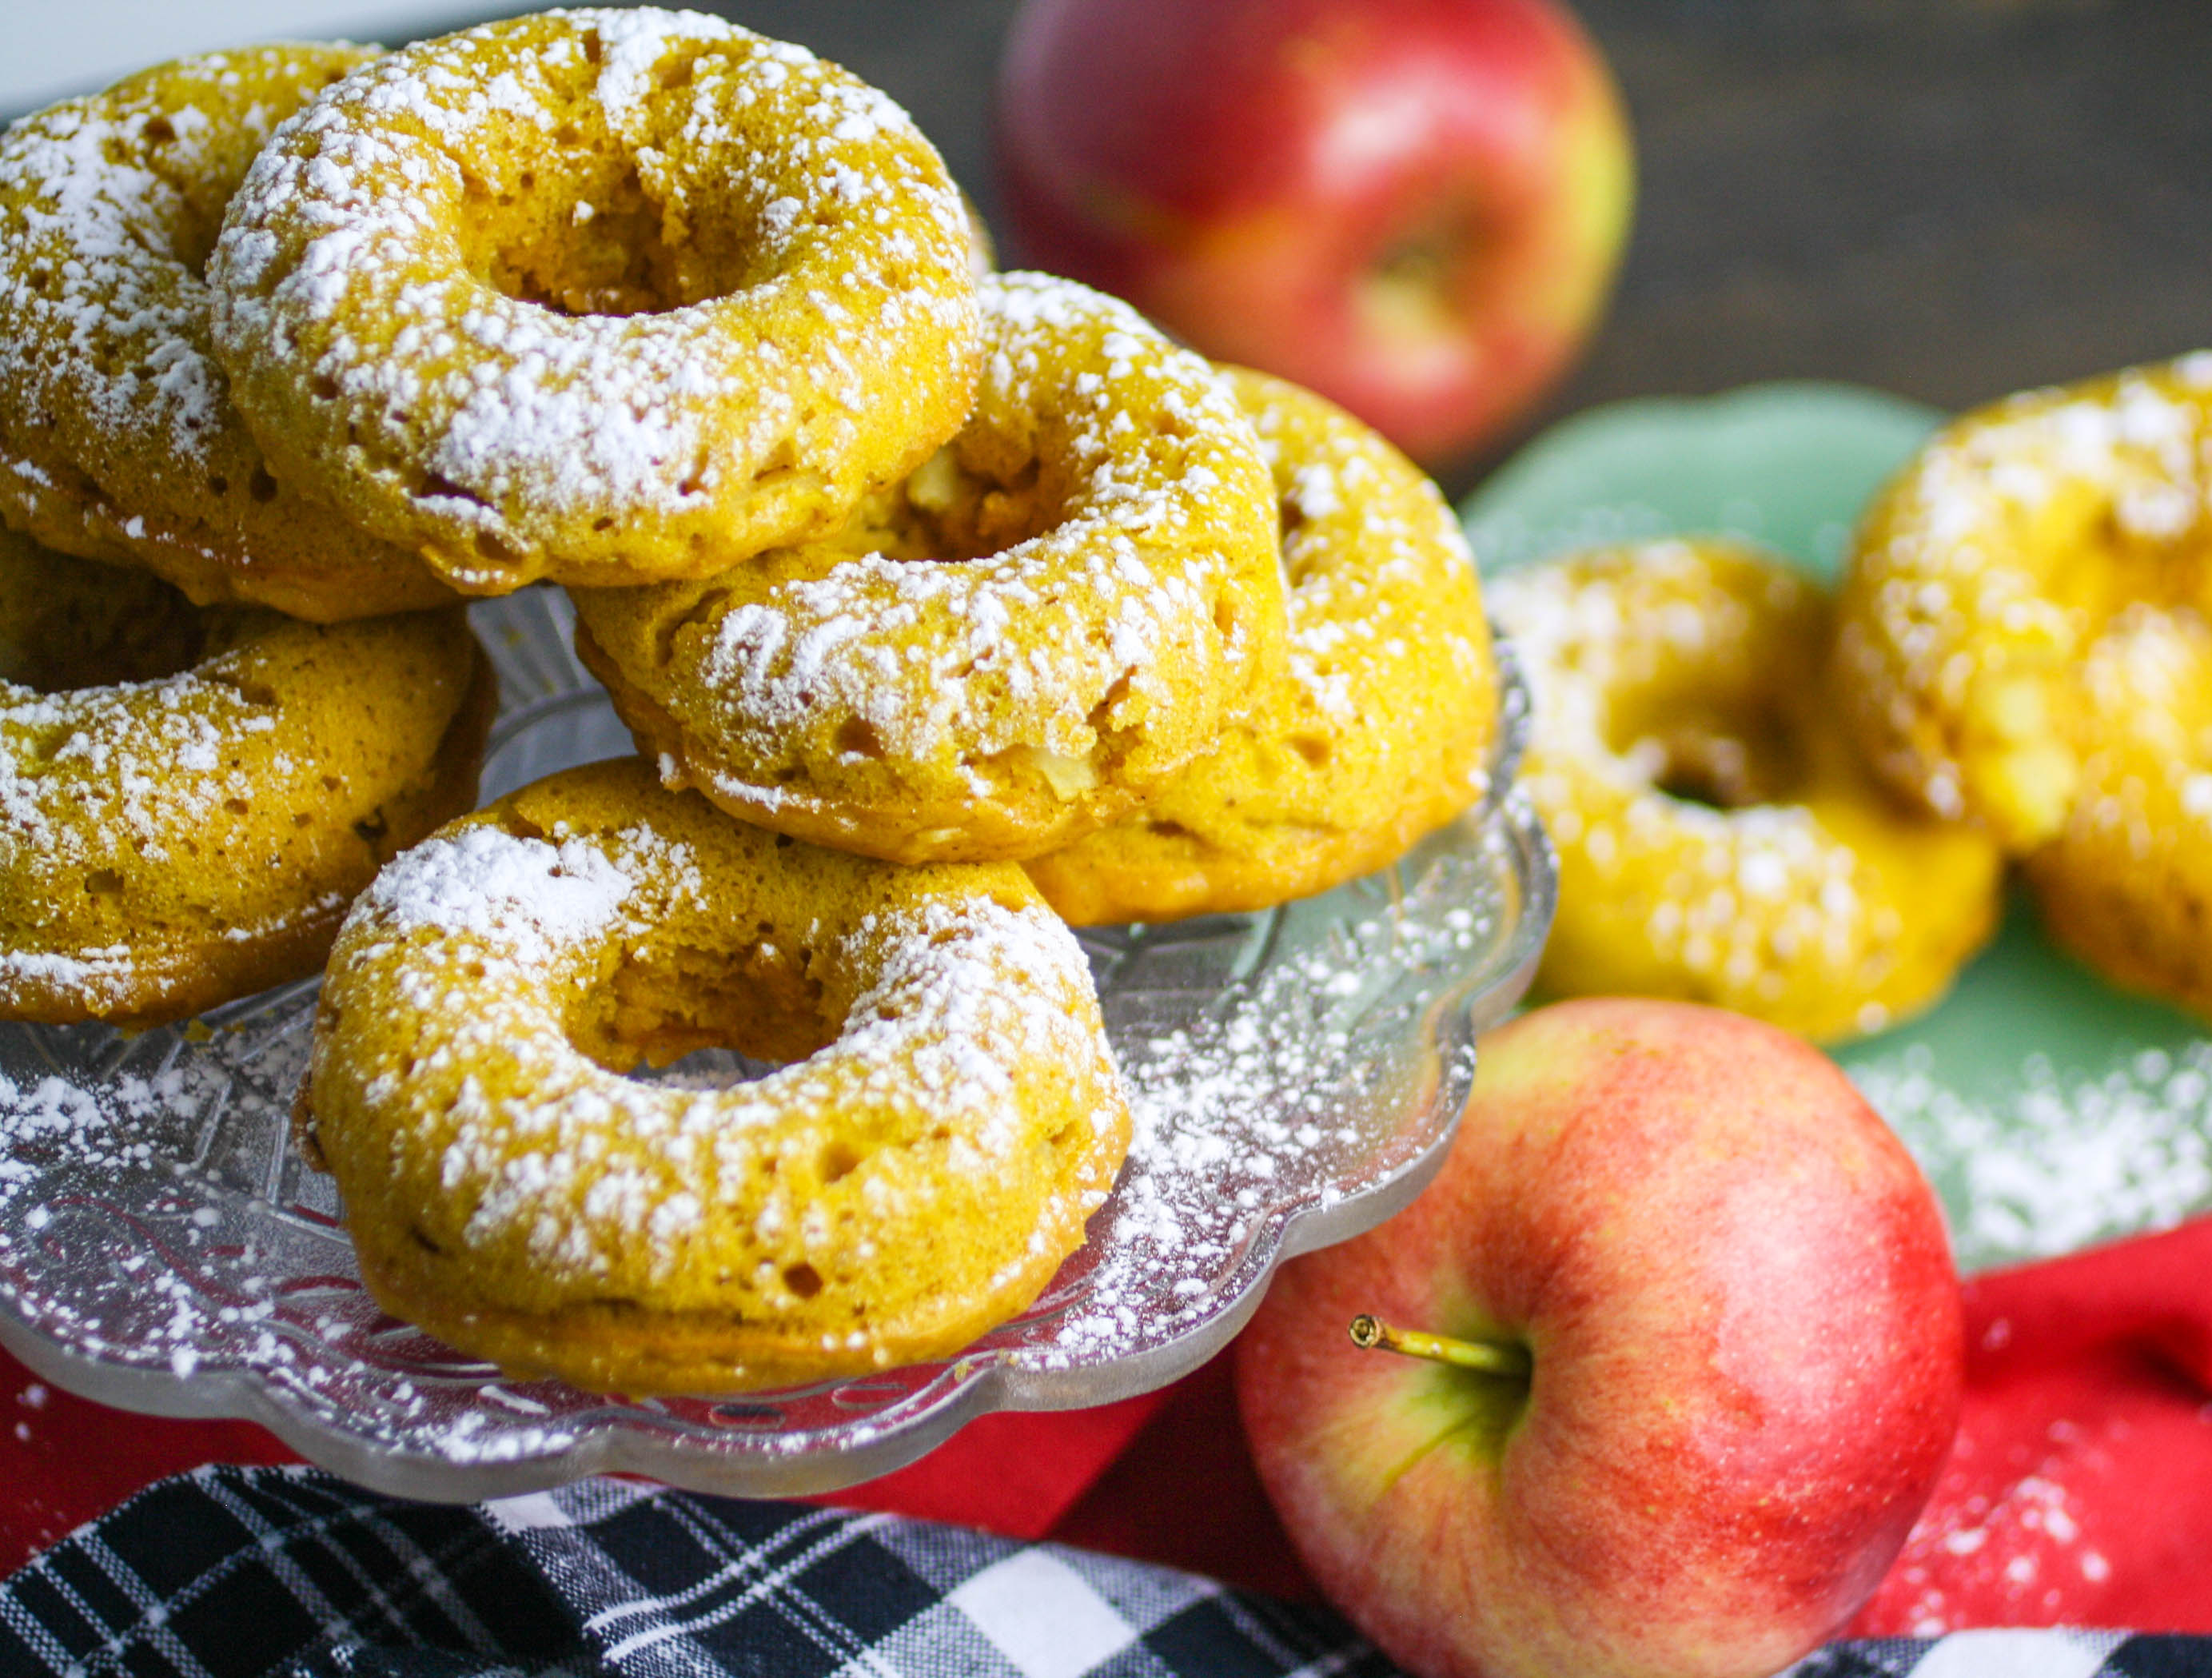 You need Baked Spiced Apple & Pumpkin Donuts in your life! These Baked Spiced Apple & Pumpkin Donuts are a seasonal treat!